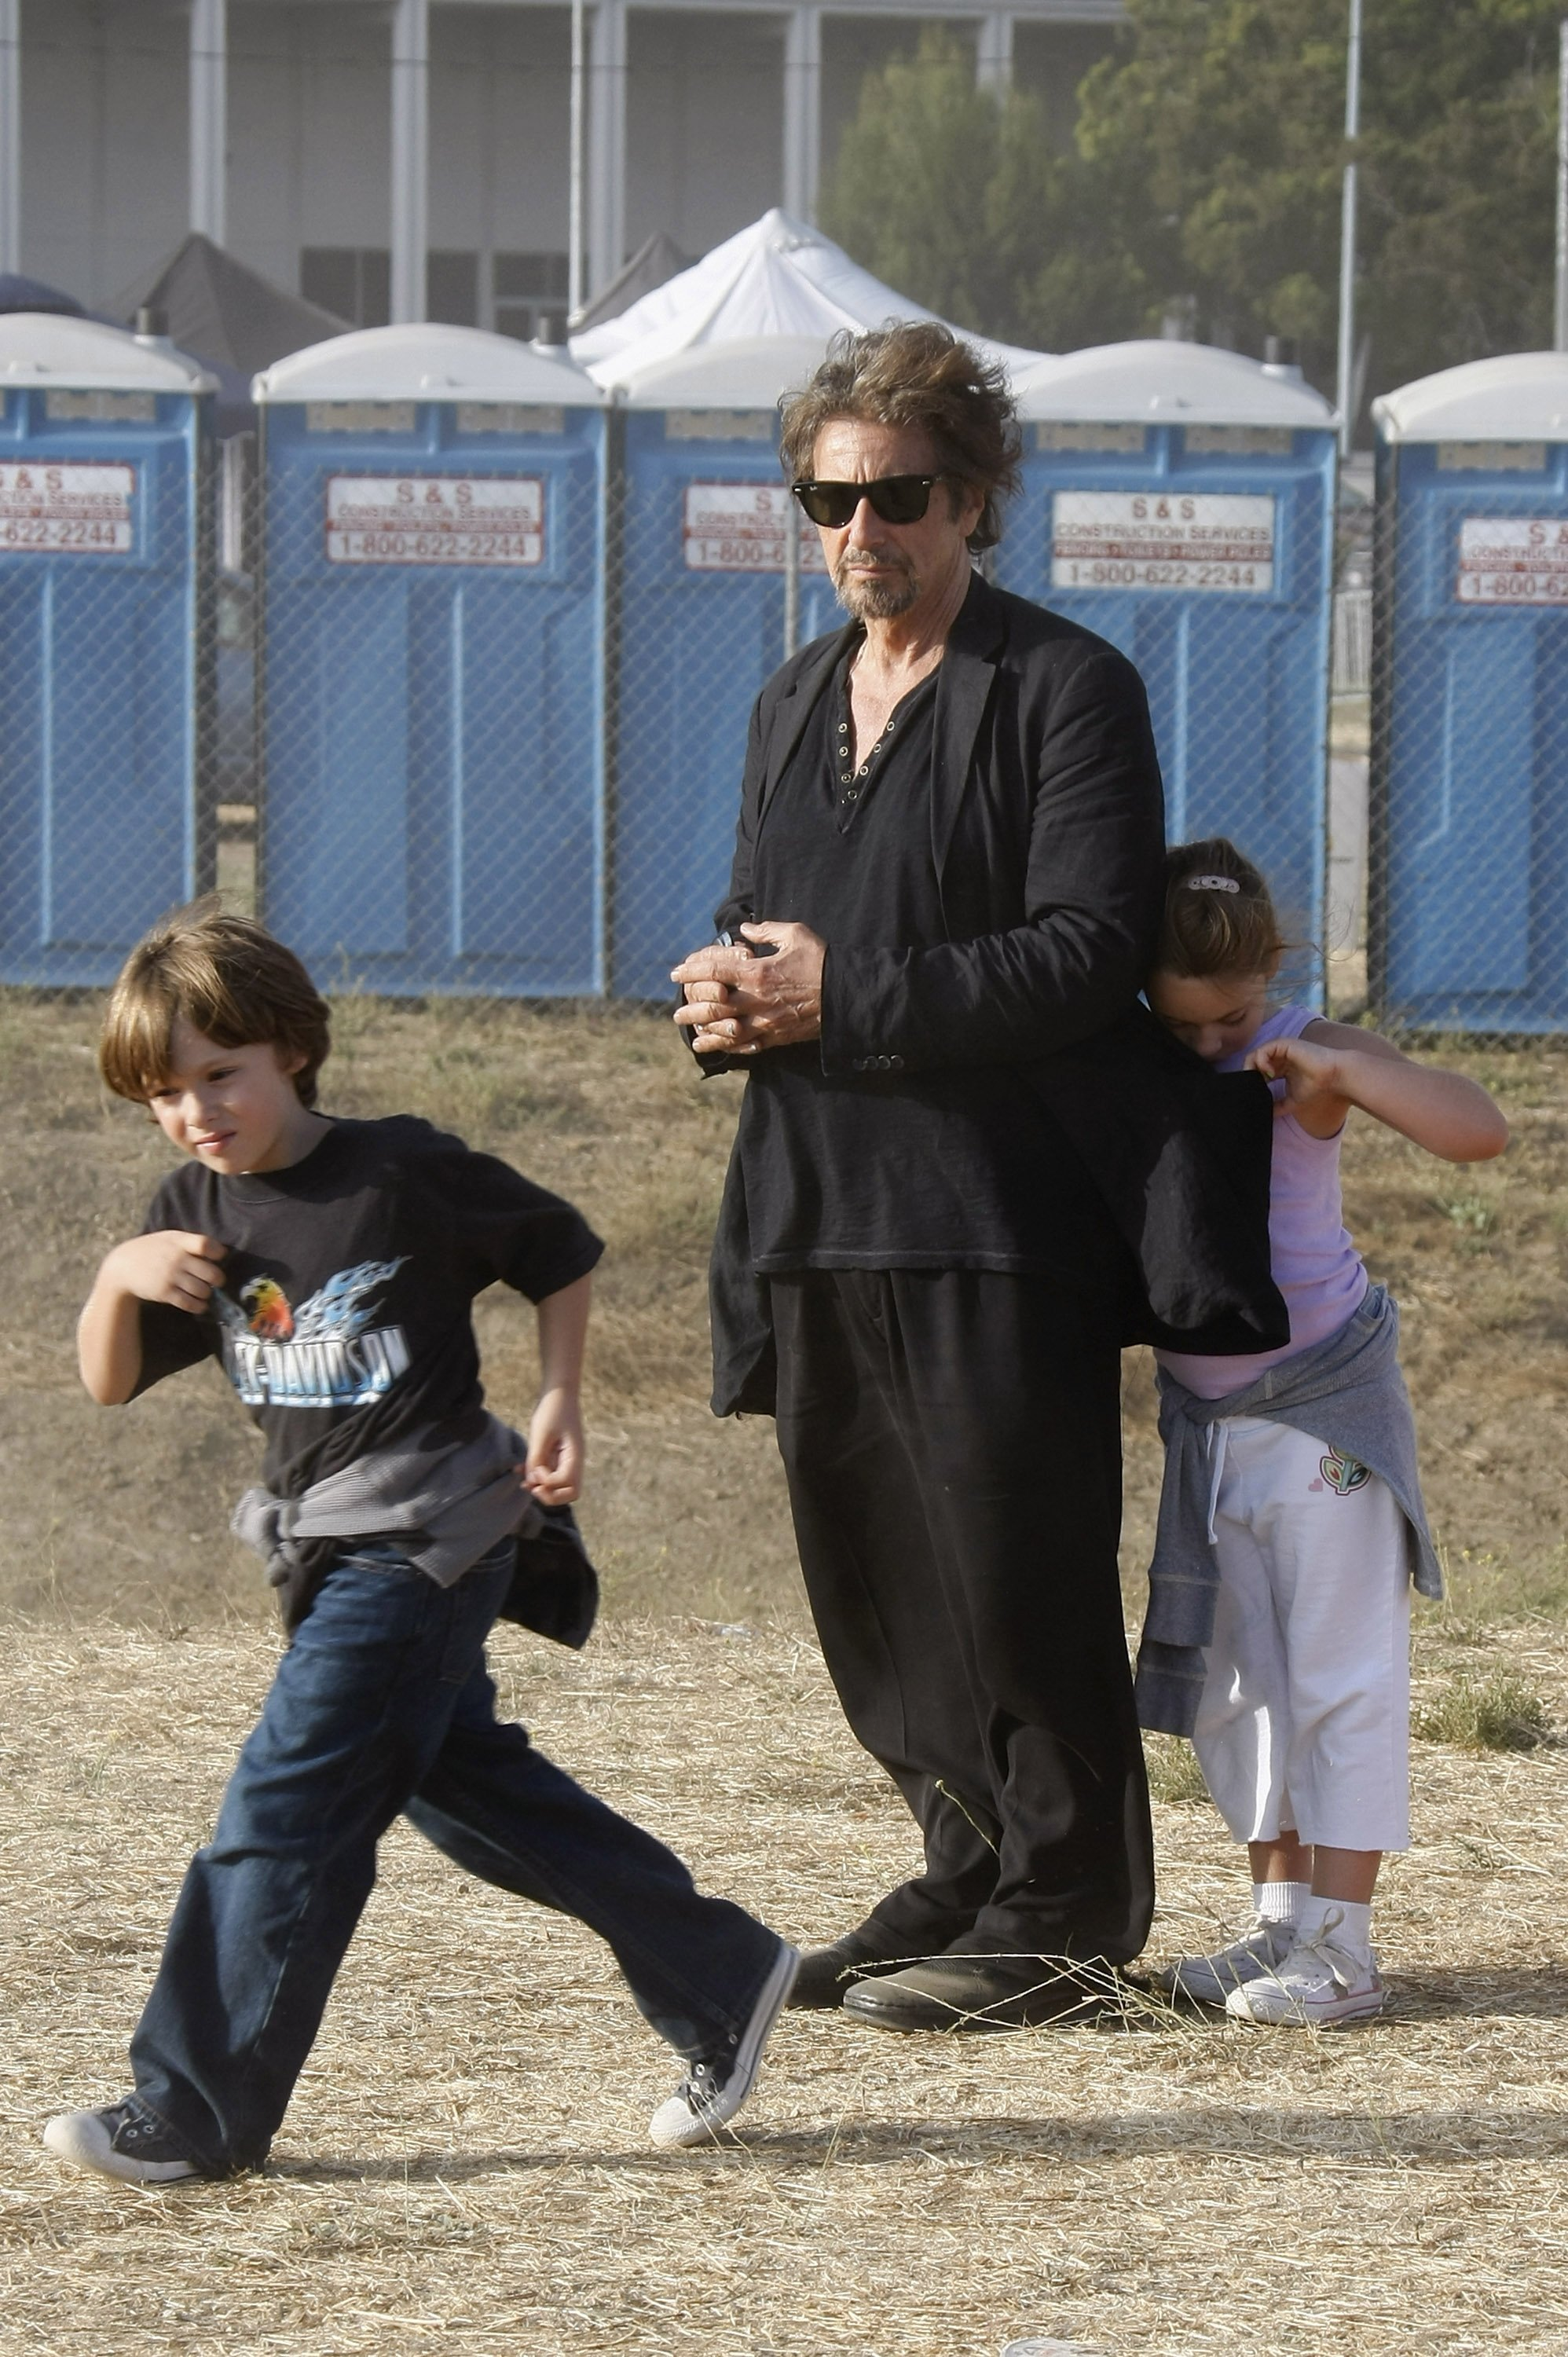 Al Pacino et ses jumeaux, son fils Anton James et sa fille Olivia Rose à Malibu, Californie le 31 août 2008. | Photo : Getty Images